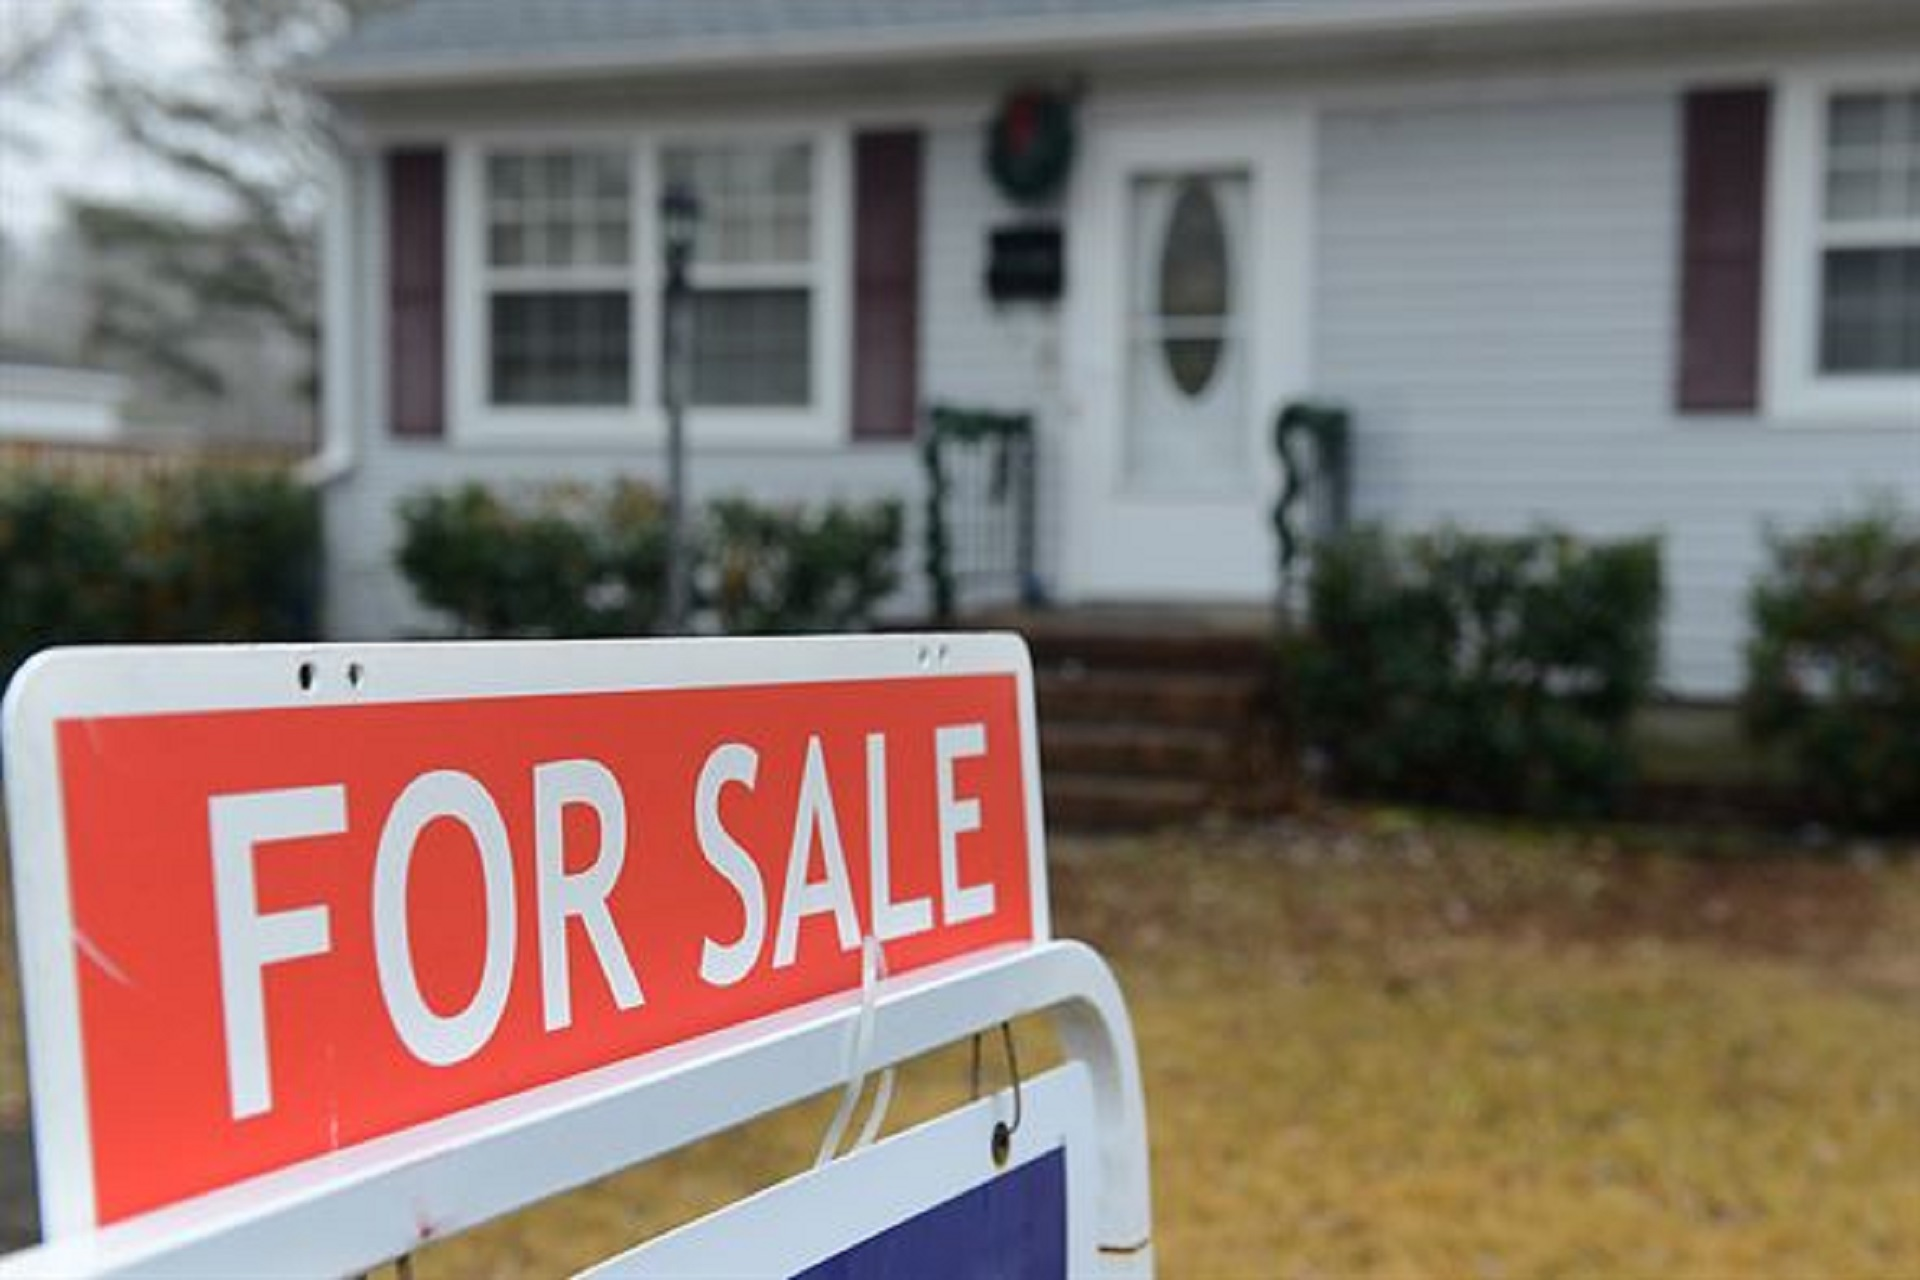 Selling a home real estate law fargo nd